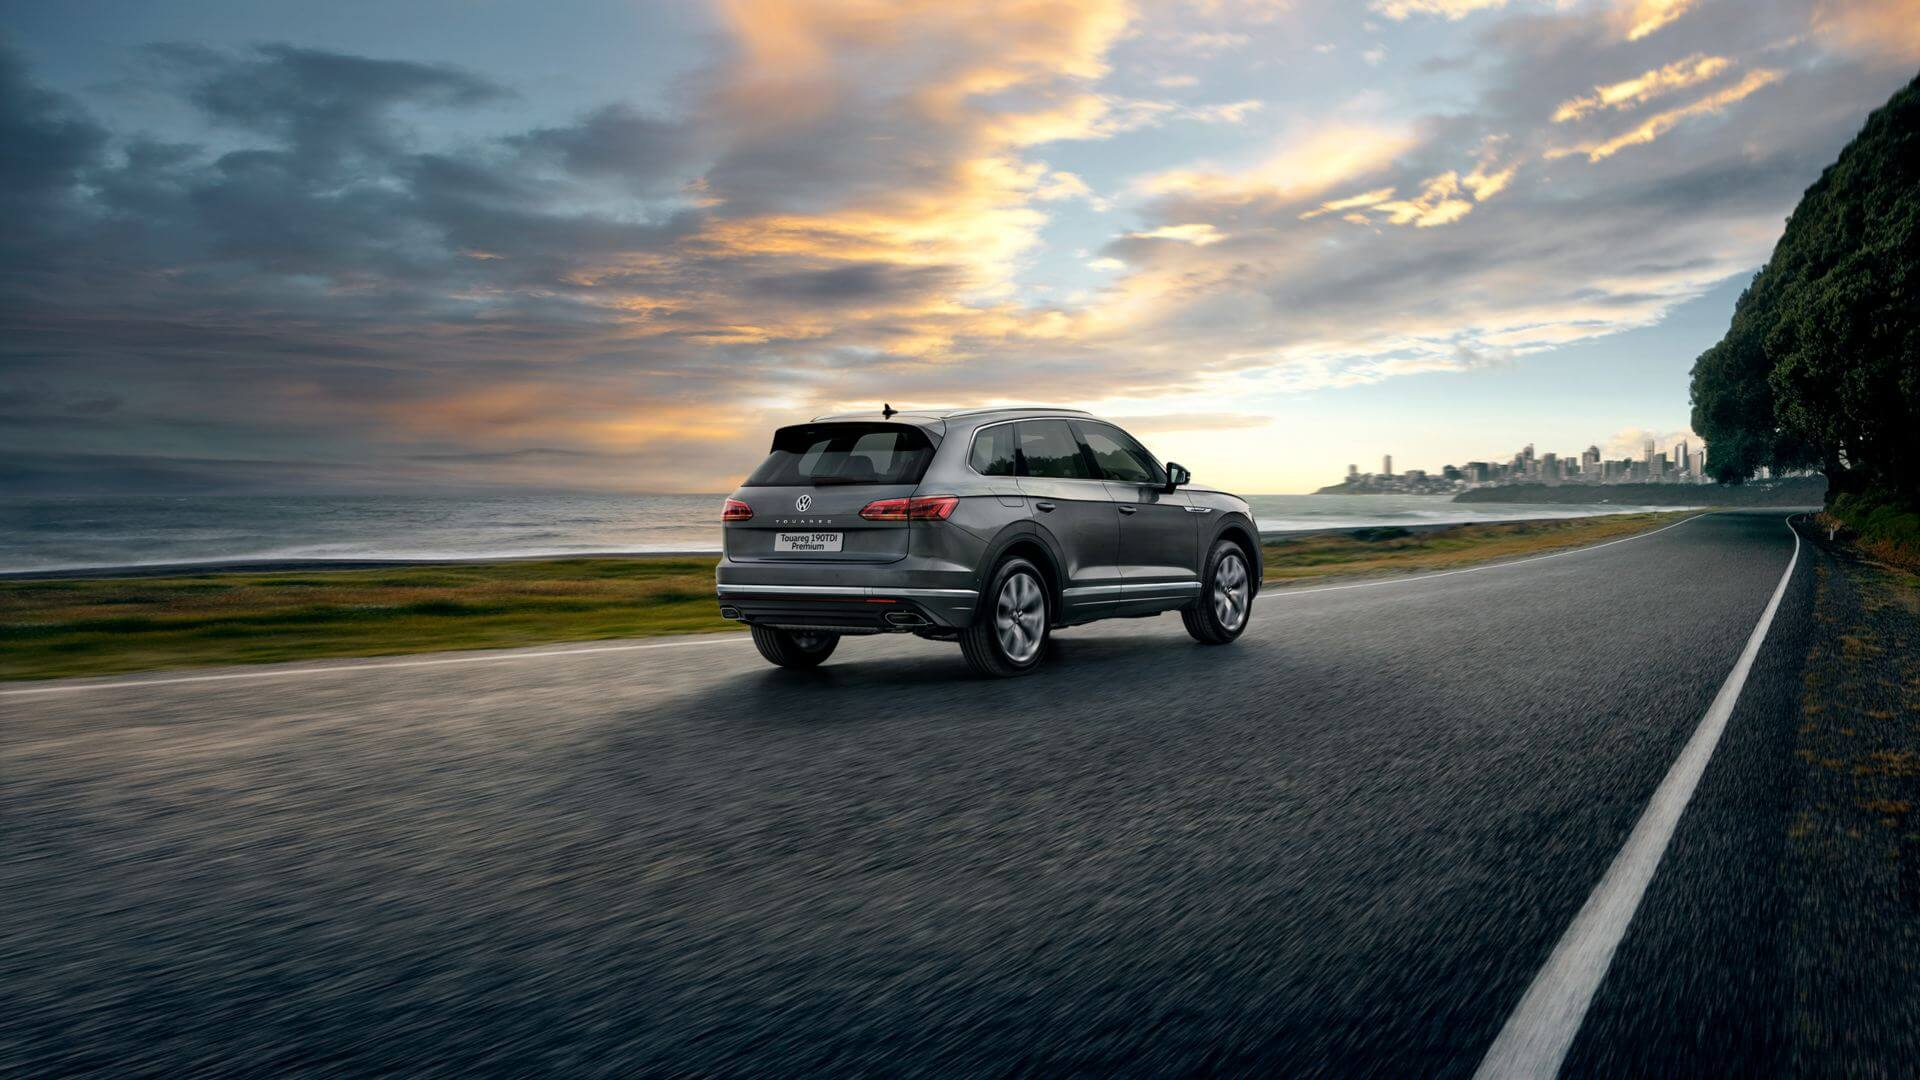 Touareg <strong>Touareg</strong><br>Luxury as standard